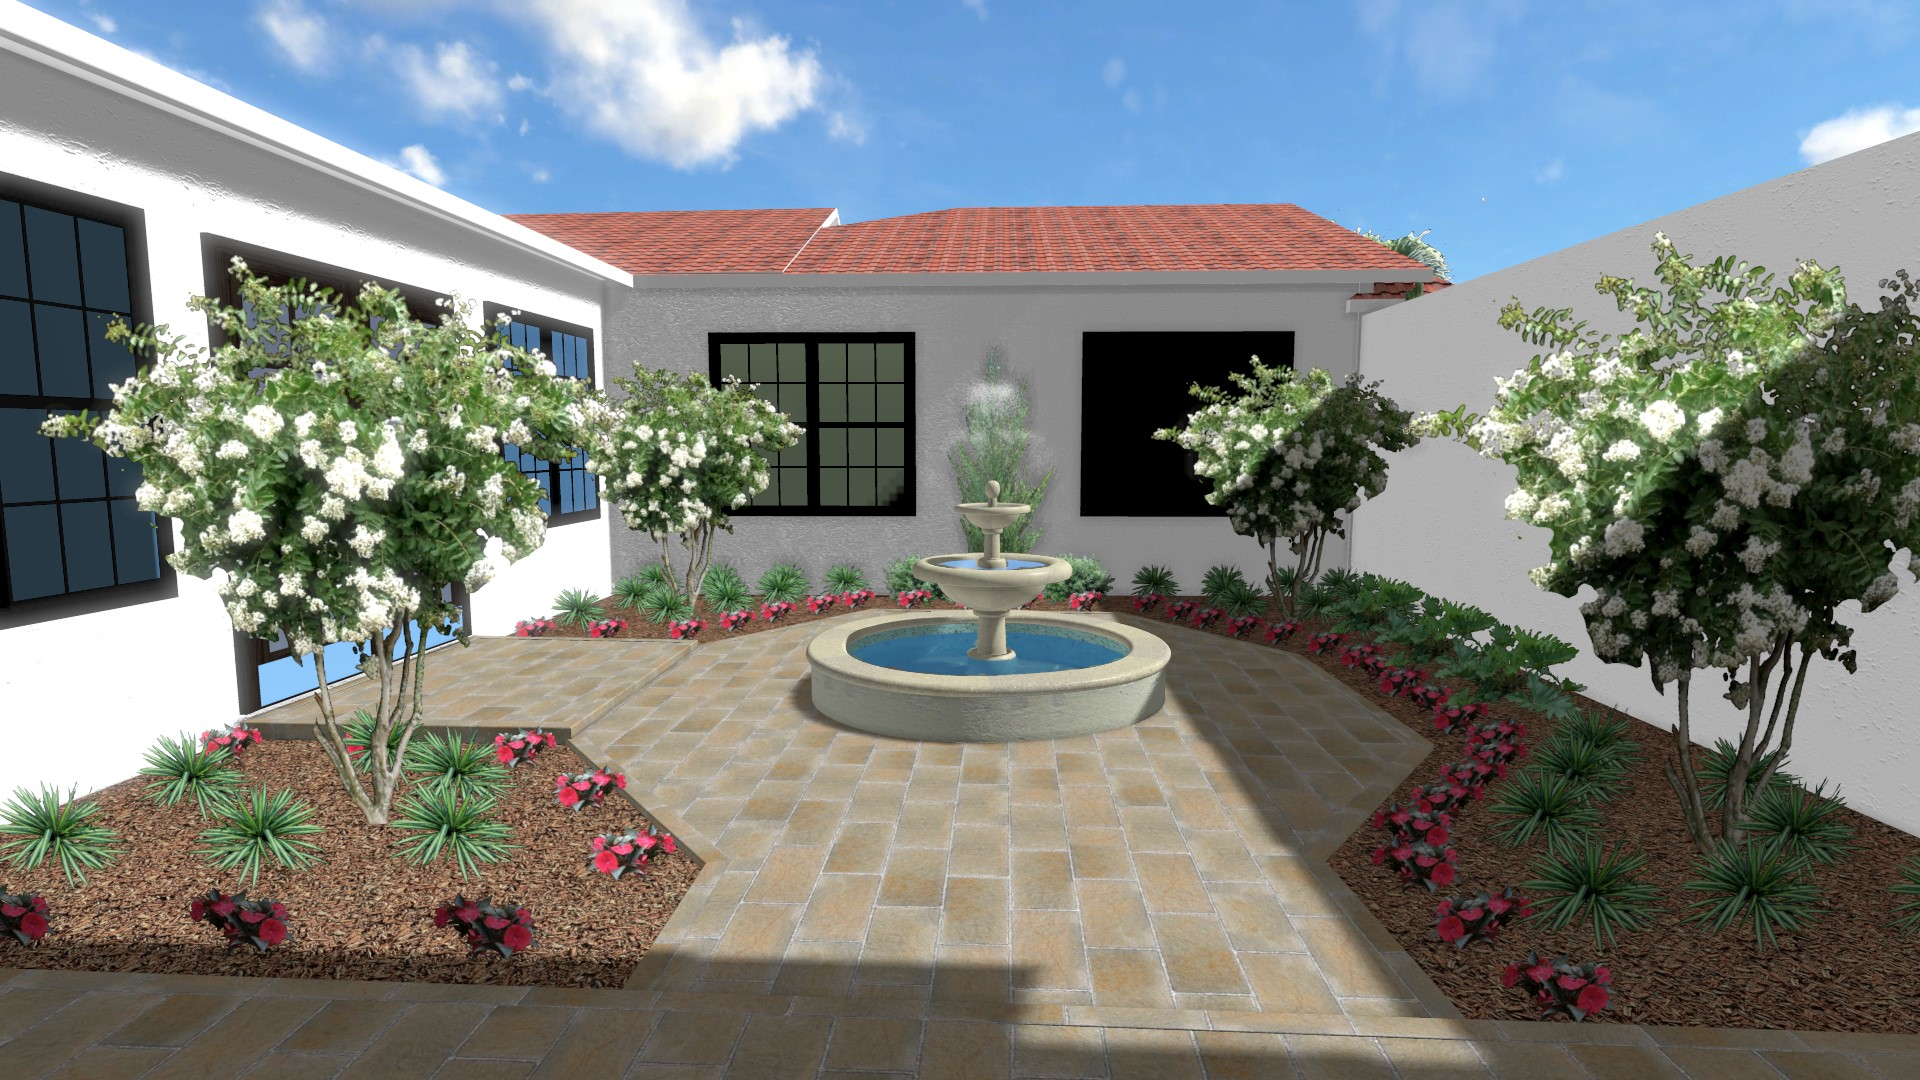 Mediterranean Courtyard with Fountain